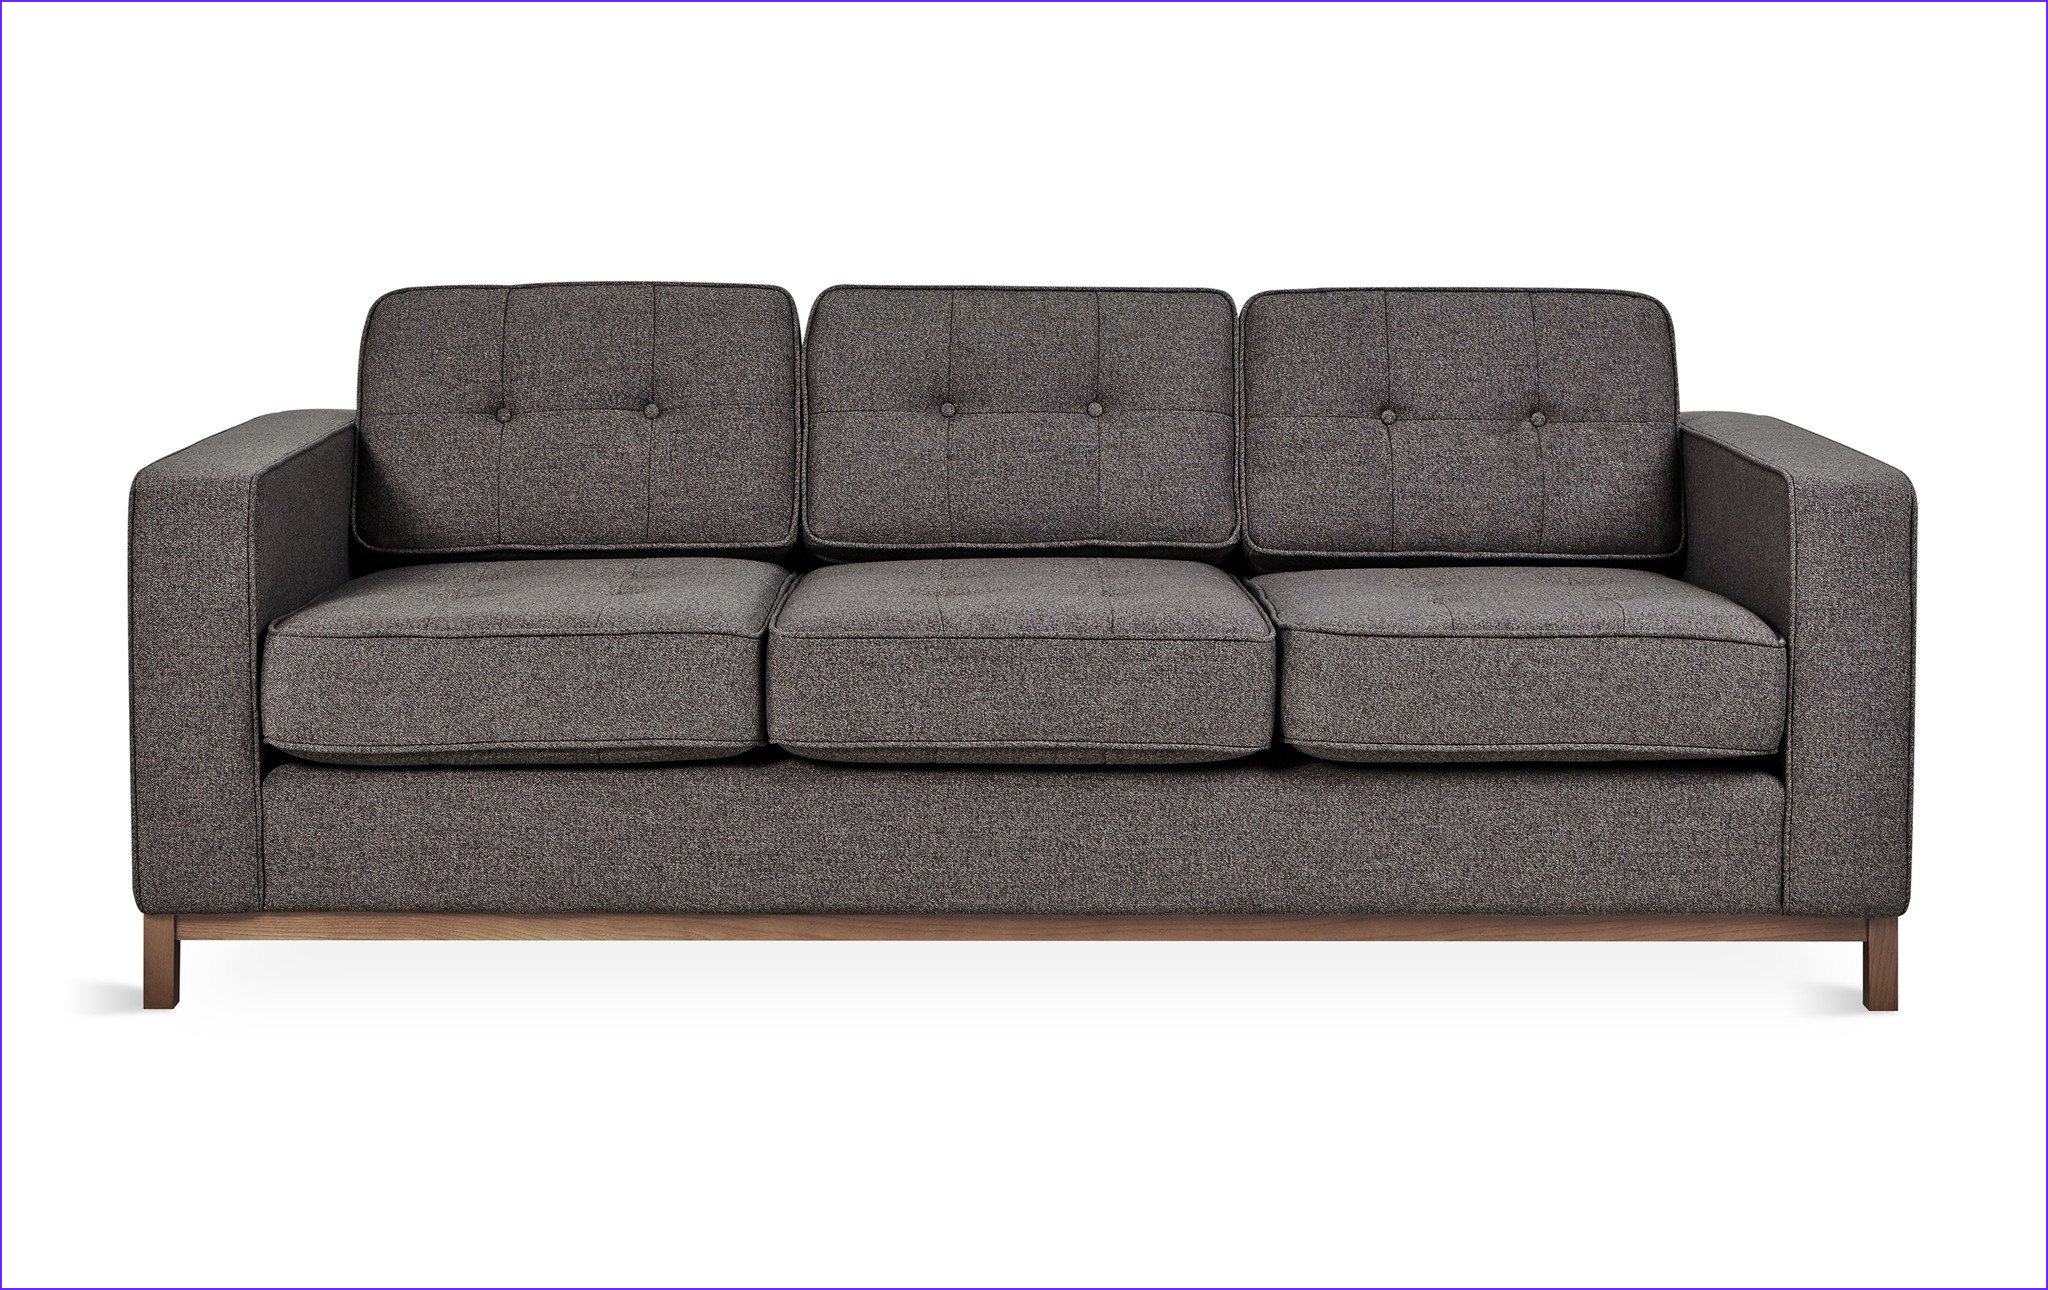 Sofa Coloring Best Of Gallery Jane sofa In assorted Colors W Walnut Base Design by Gus